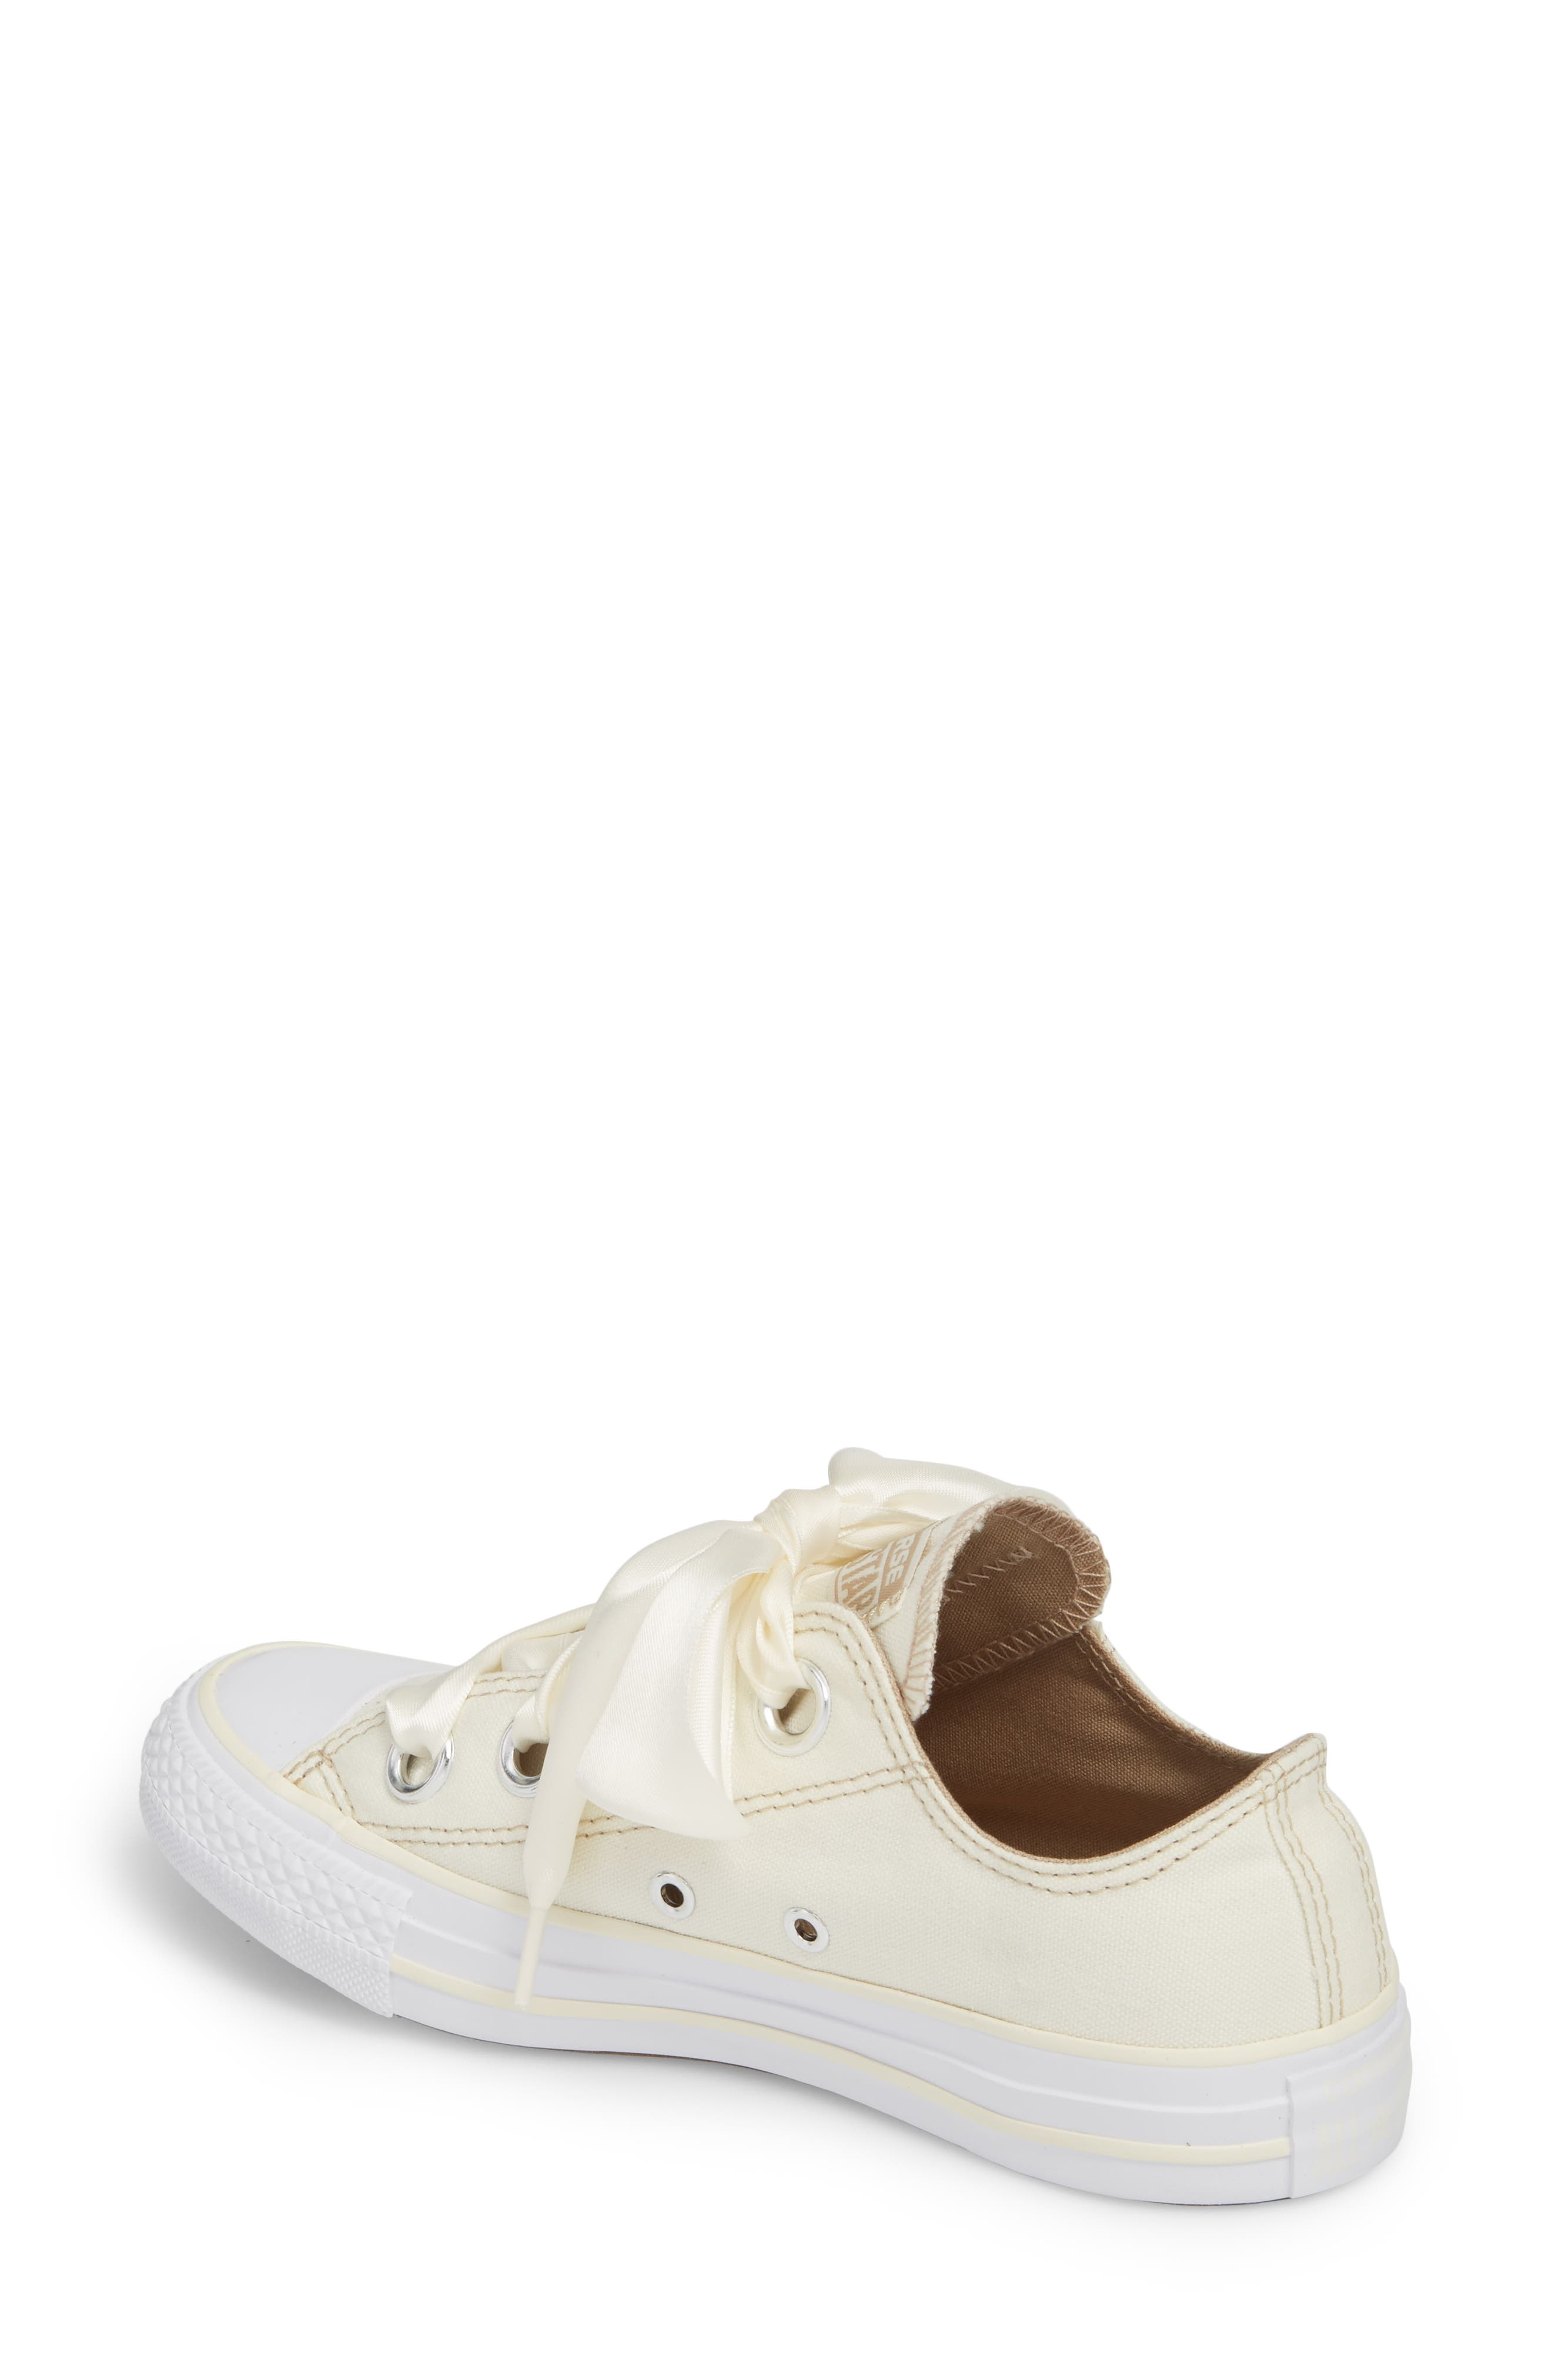 Chuck Taylor<sup>®</sup> All Star<sup>®</sup> Big Eyelet Ox Sneaker,                             Alternate thumbnail 6, color,